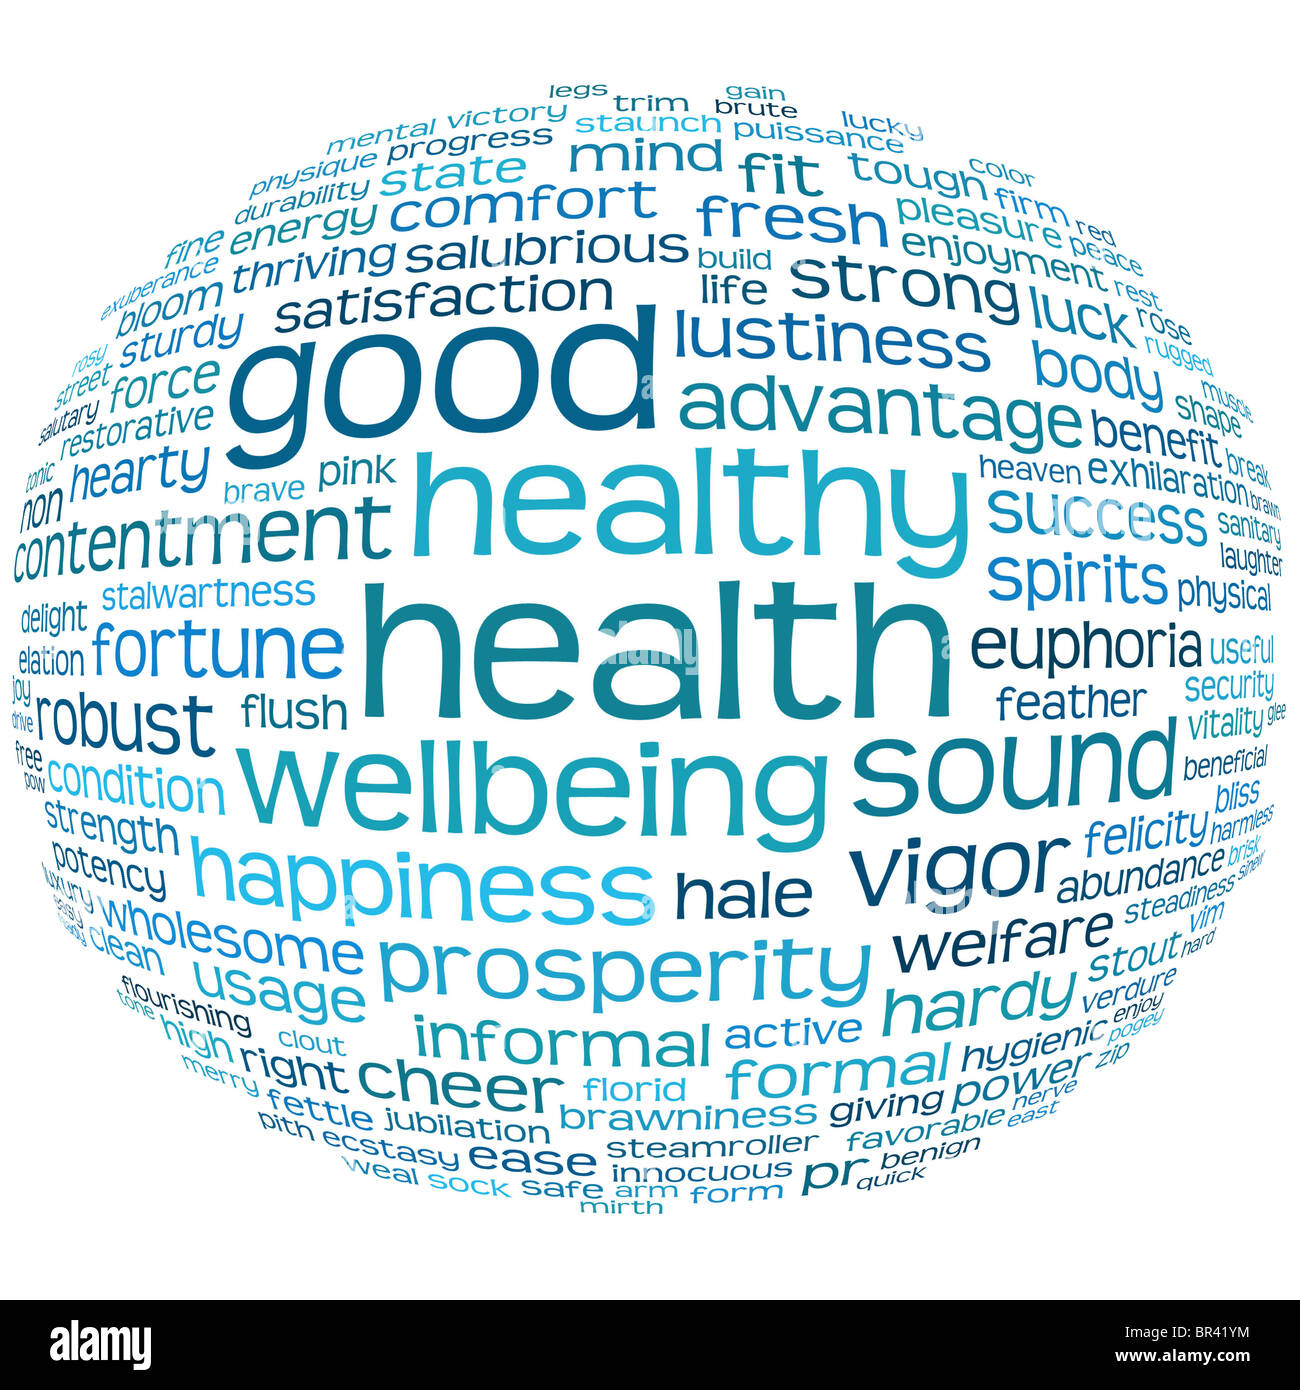 good health and wellbeing tag or word cloud Stock Photo, Royalty ...